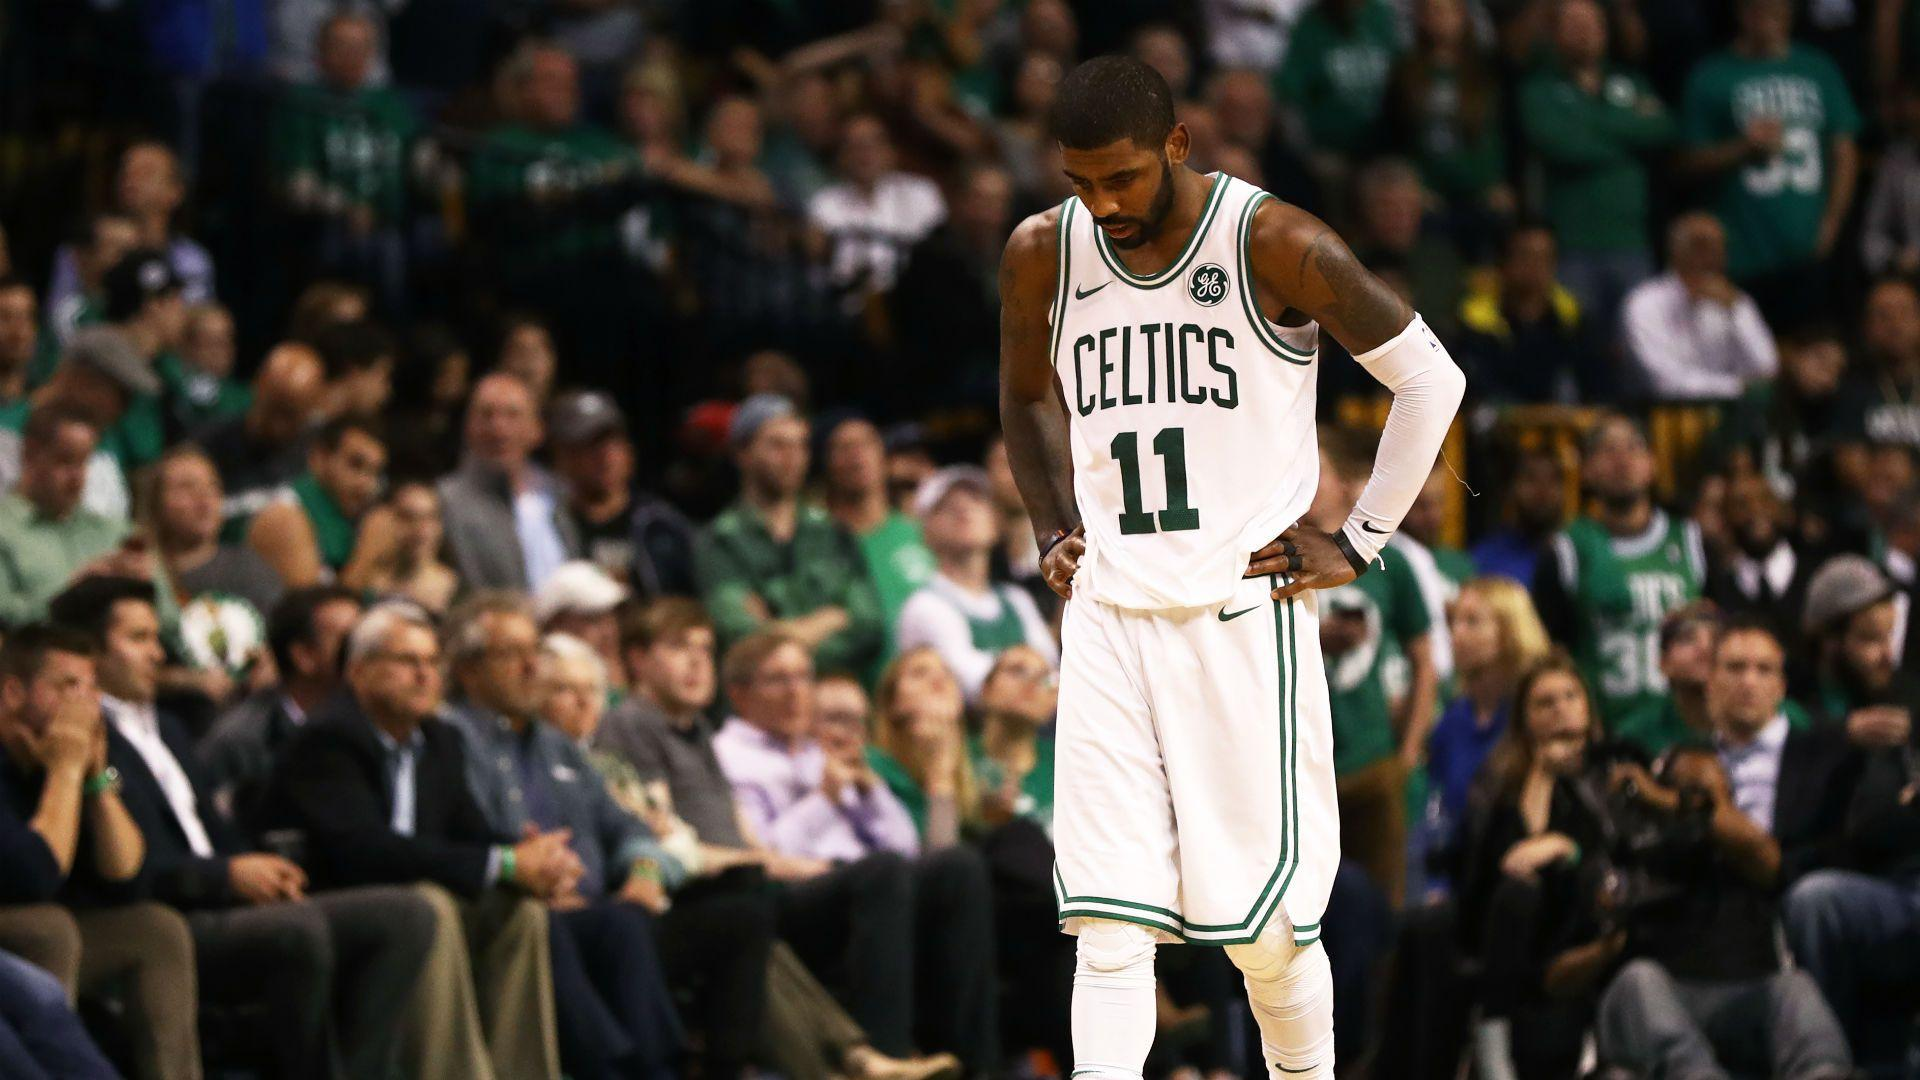 Kyrie Irving wants his own team, but No. 1 status comes with no ...